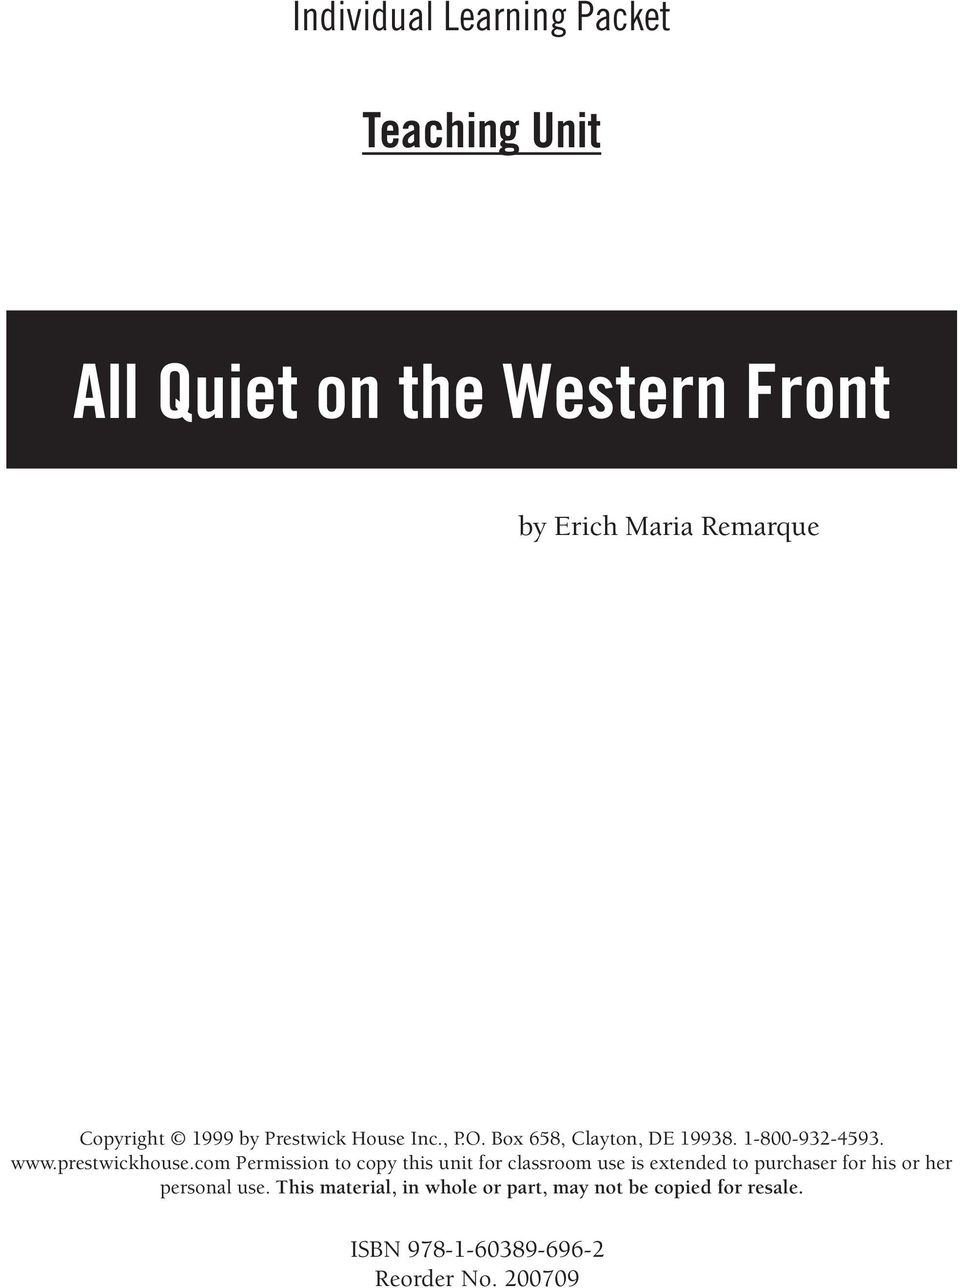 all quiet on the western front essays on comradeship All quiet on the western front the best thing that the war produced - comradeship in arms (p 19) all quiet on the western front is a fantastic yet tradgic book that focuses on the lives of a young german man who joins the war with his school friends in world war 1 ,the narrator, paul underlines how terribal the war was and that the best thing that the war produced - comradeship.